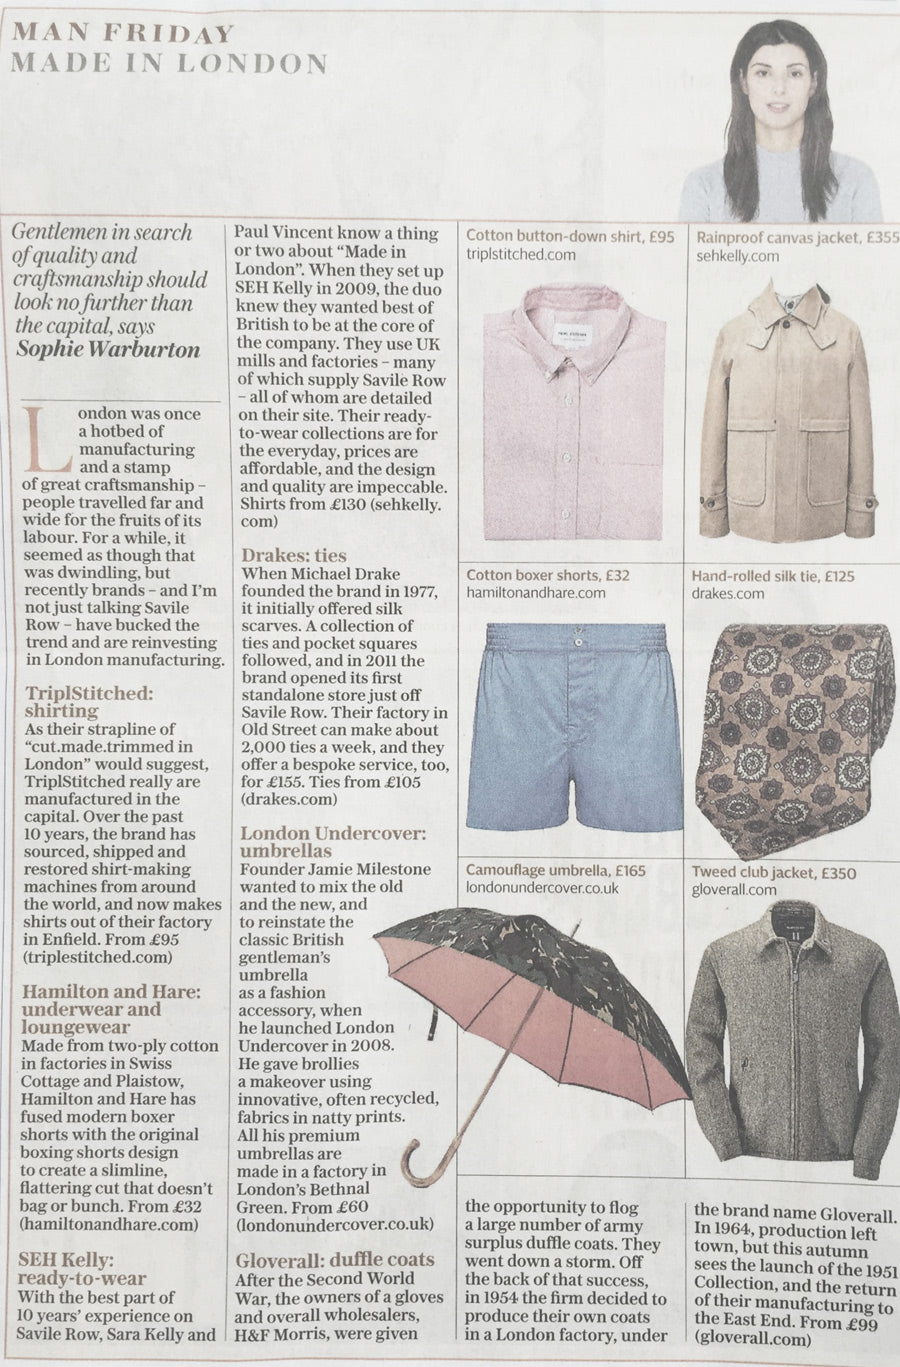 Daily Telegraph feature Hamilton and Hare - Made in London